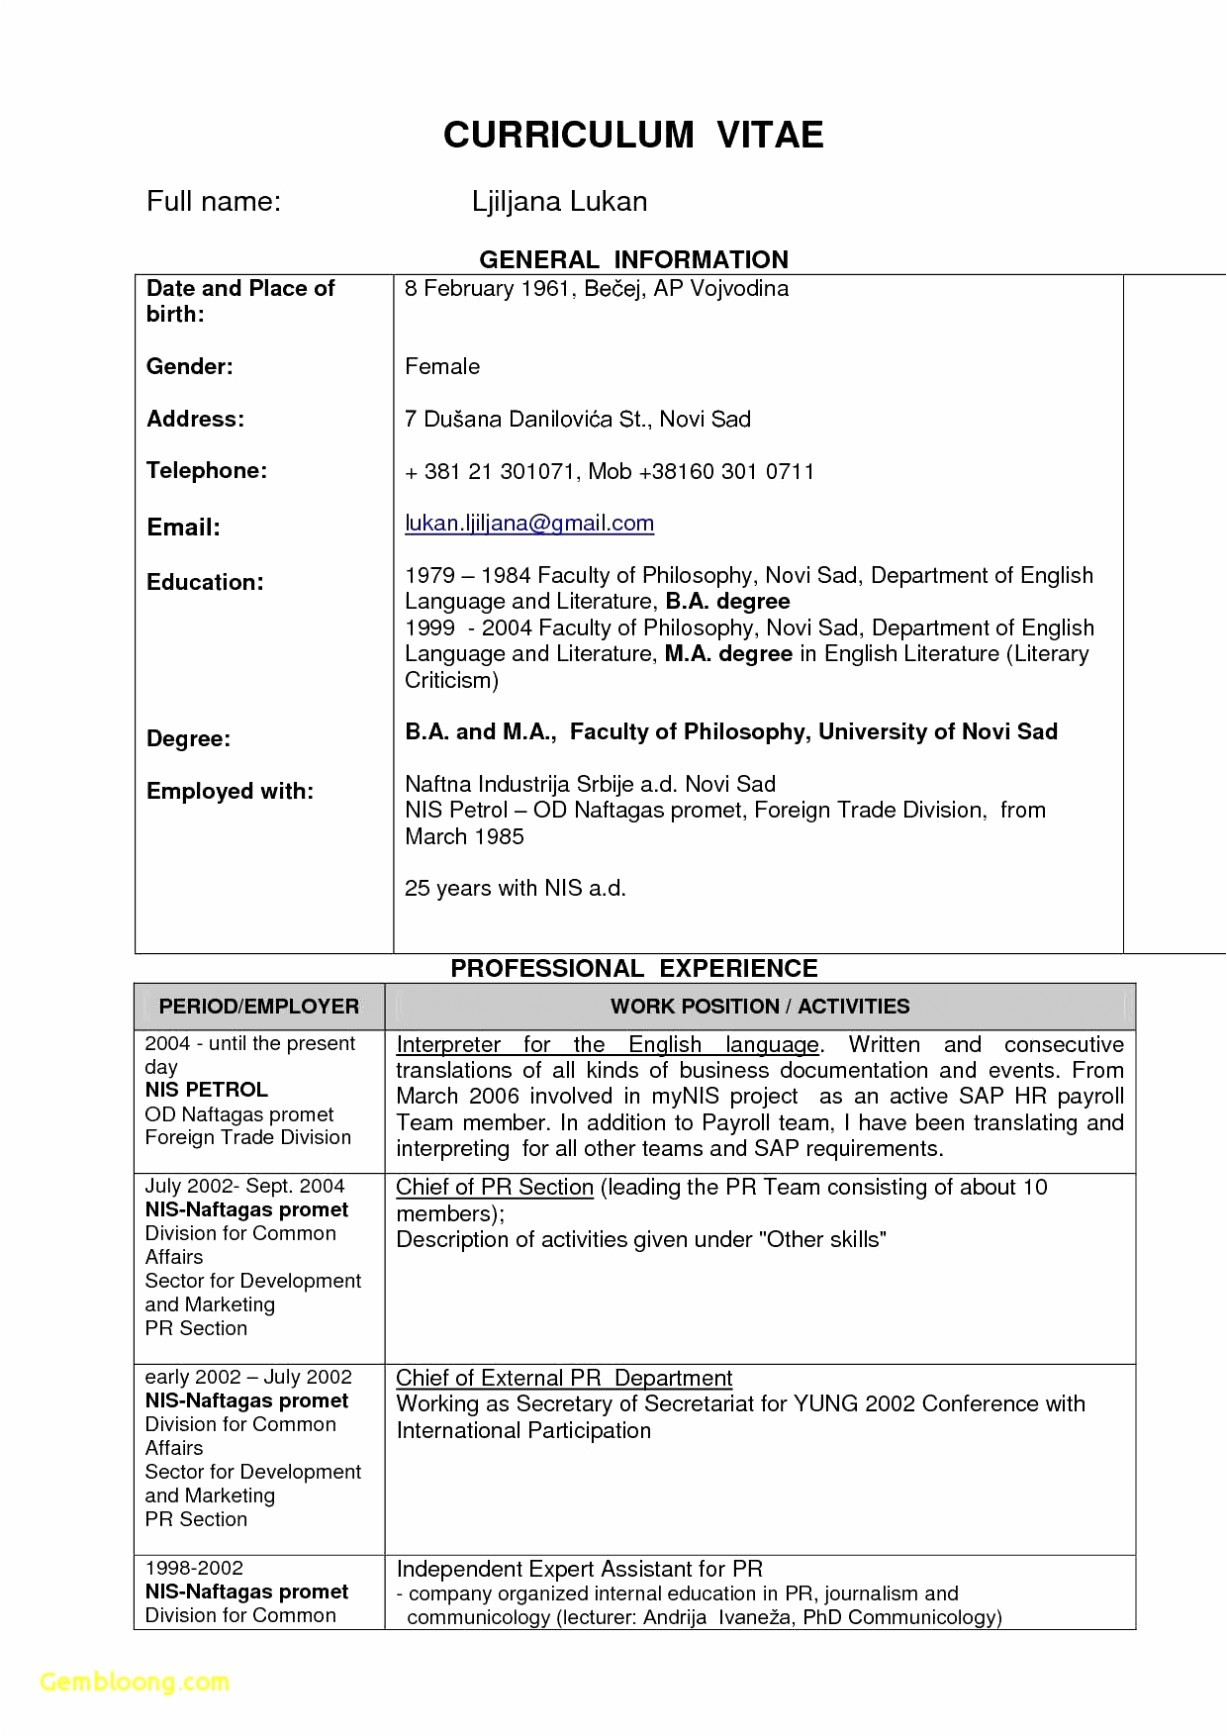 Resume Template for Actors - Actor Resume Template Save Work Objective for Resume New Actor